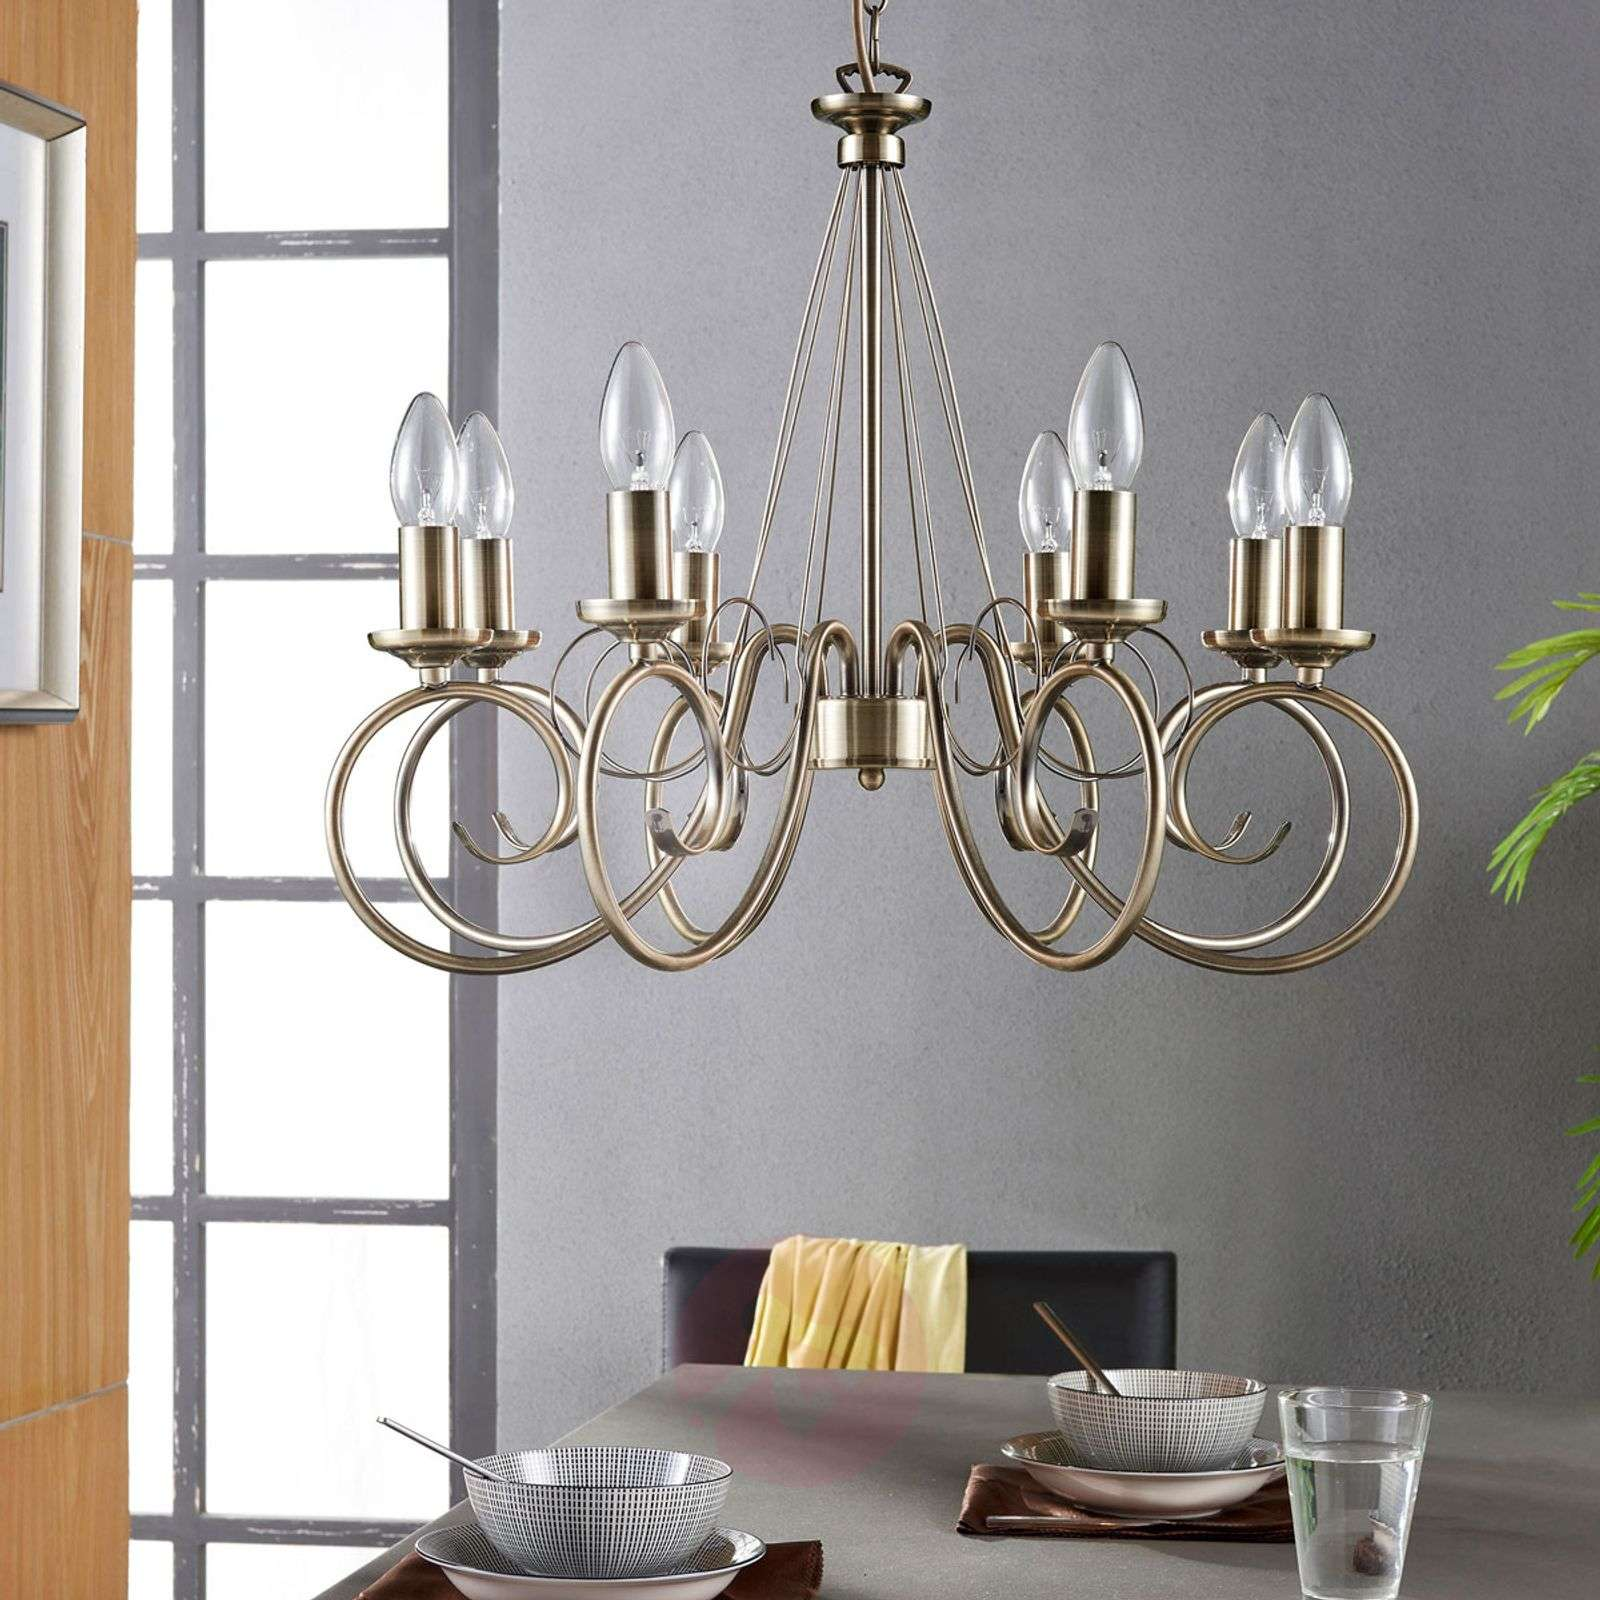 8-bulb Marnia chandelier in antique brass-9621016-01